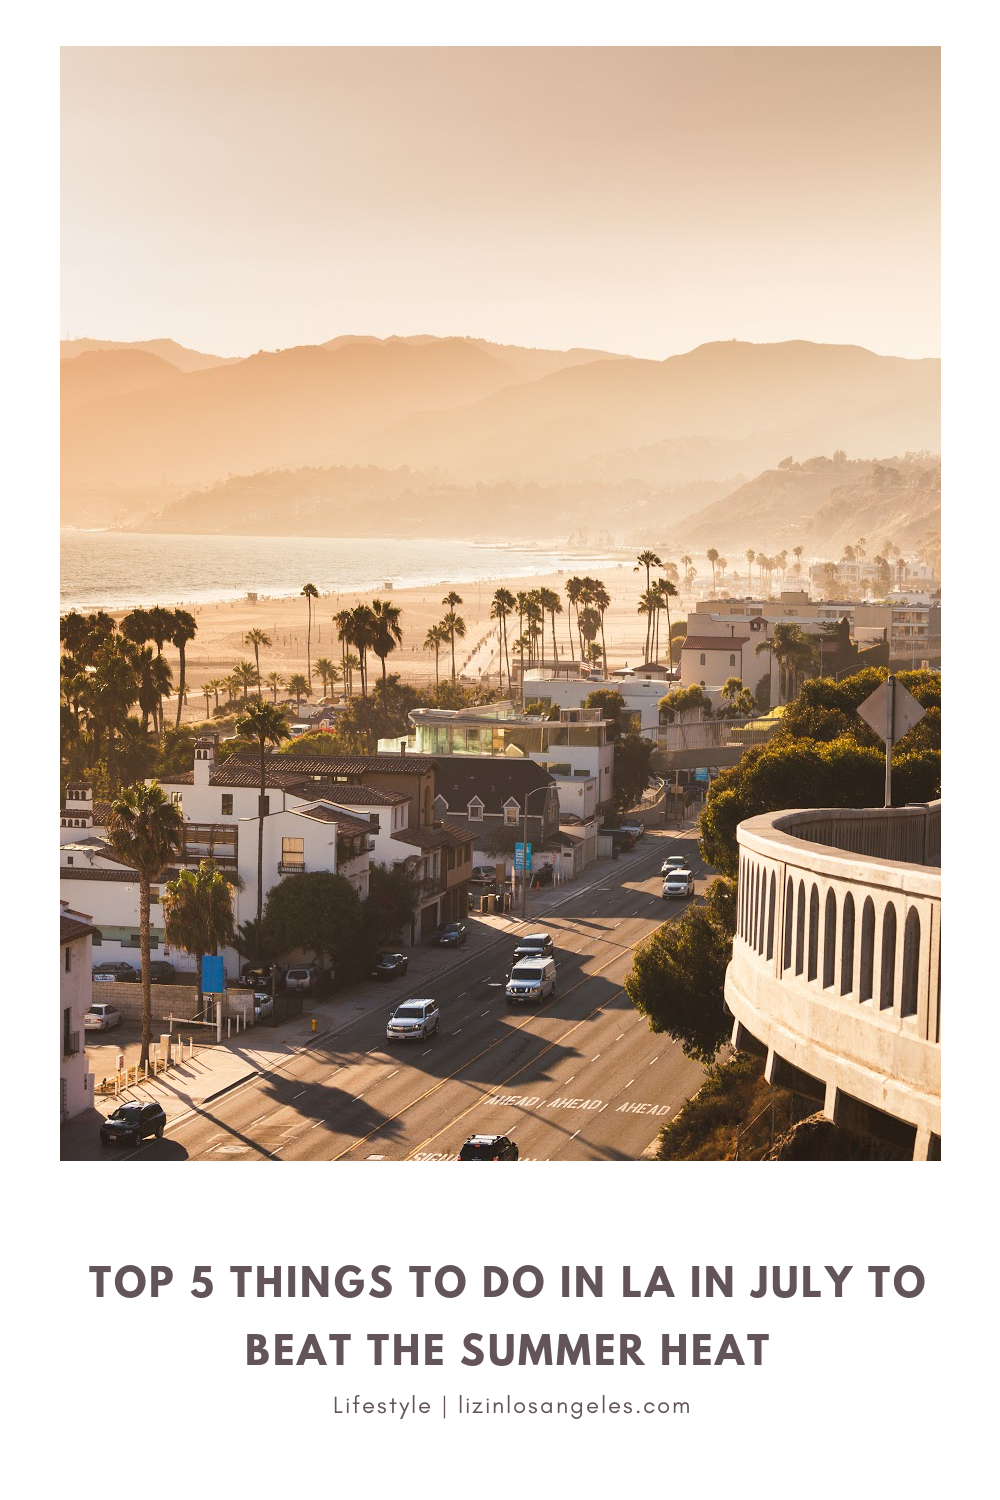 Top 5 Things to Do in LA in July 2020 to Beat the Summer Heat, a blog post by Liz in Los Angeles, Los Angeles Lifestyle Blogger, an image of Santa Monica